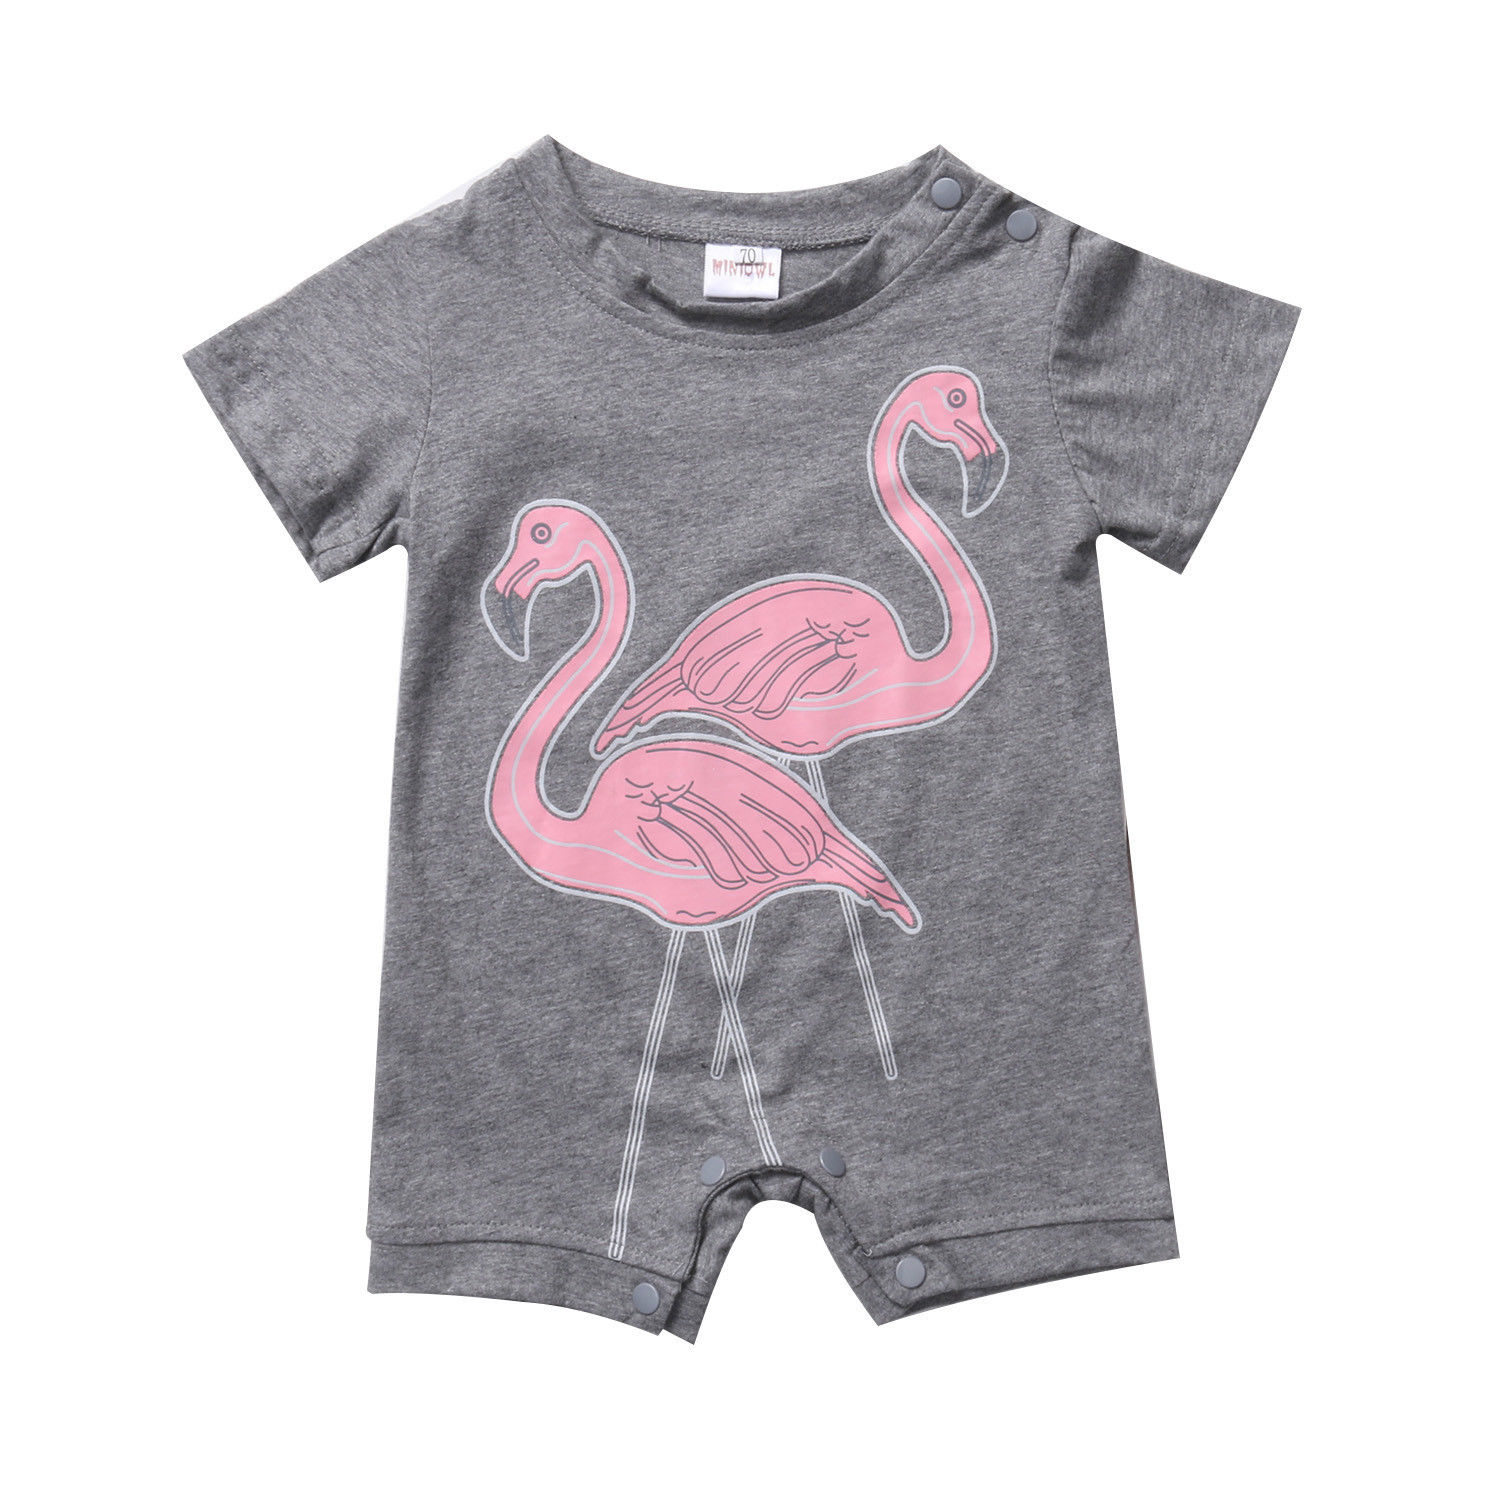 Cotton Toddler Newborn Baby Boy Girl Kid Short Sleeve Flamingo Romper Jumpsuit Outfit Clothes baby girl 1st birthday outfits short sleeve infant clothing sets lace romper dress headband shoe toddler tutu set baby s clothes